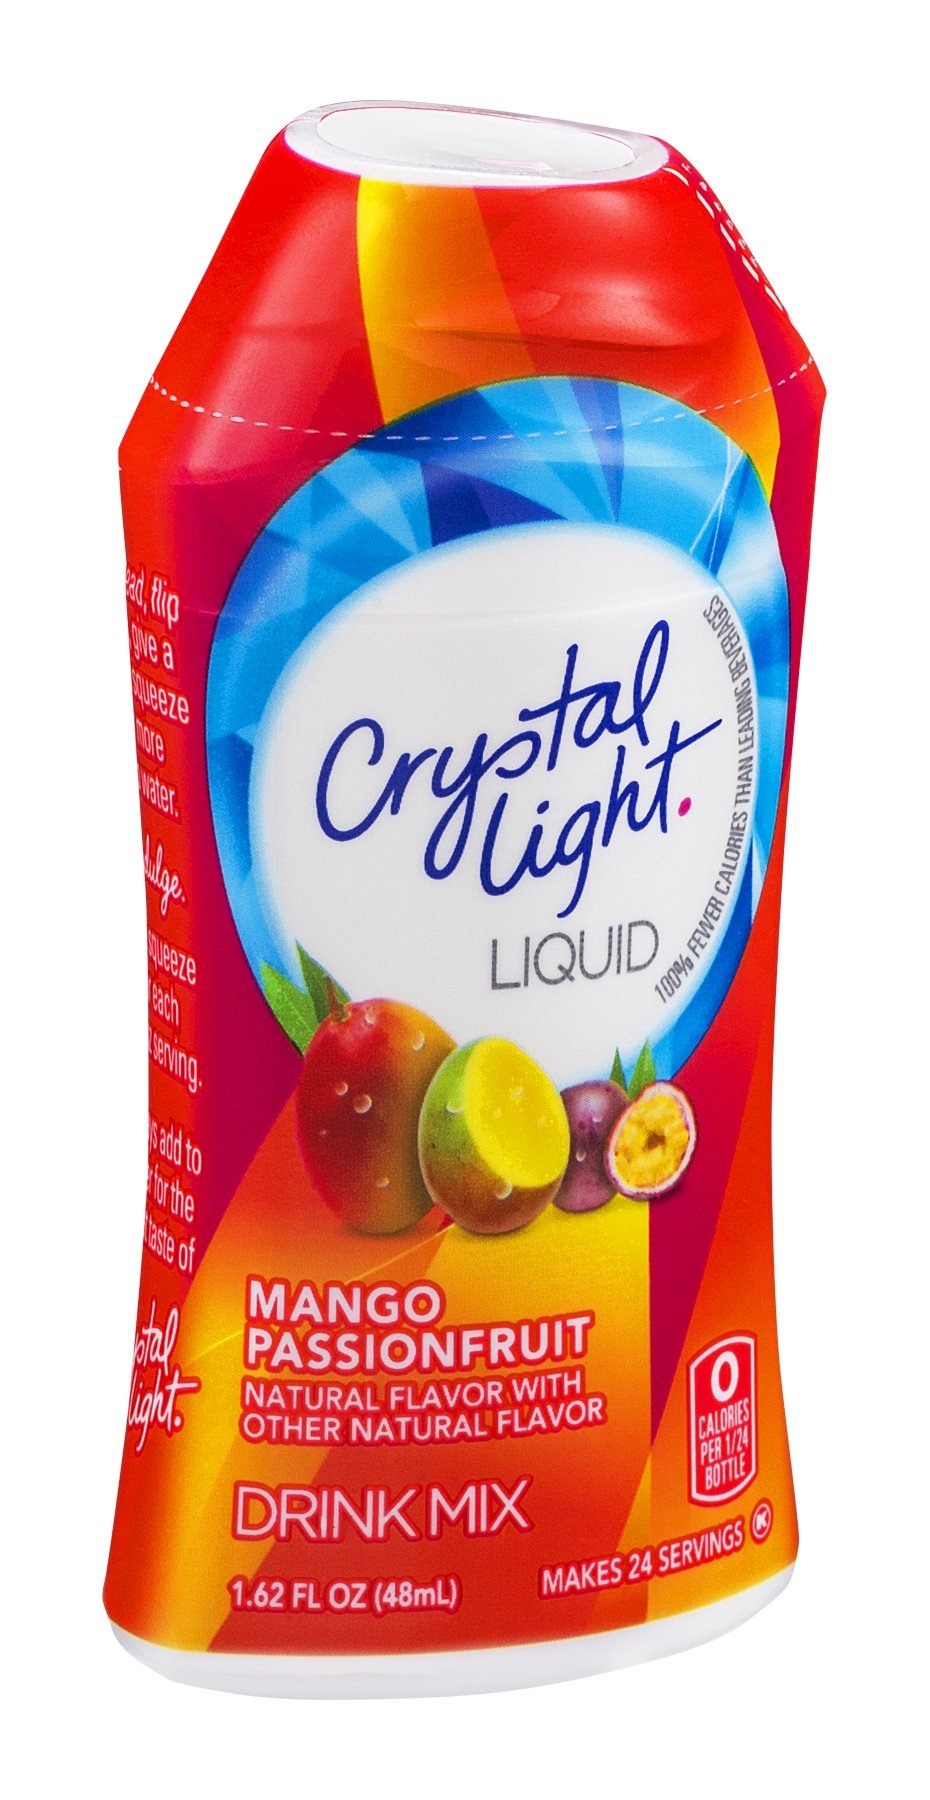 Crystal Light Liquid Drink Mix Mango Passionfruit Flavor 1.62 OZ (Pack of 24) by Crystal Light (Image #1)